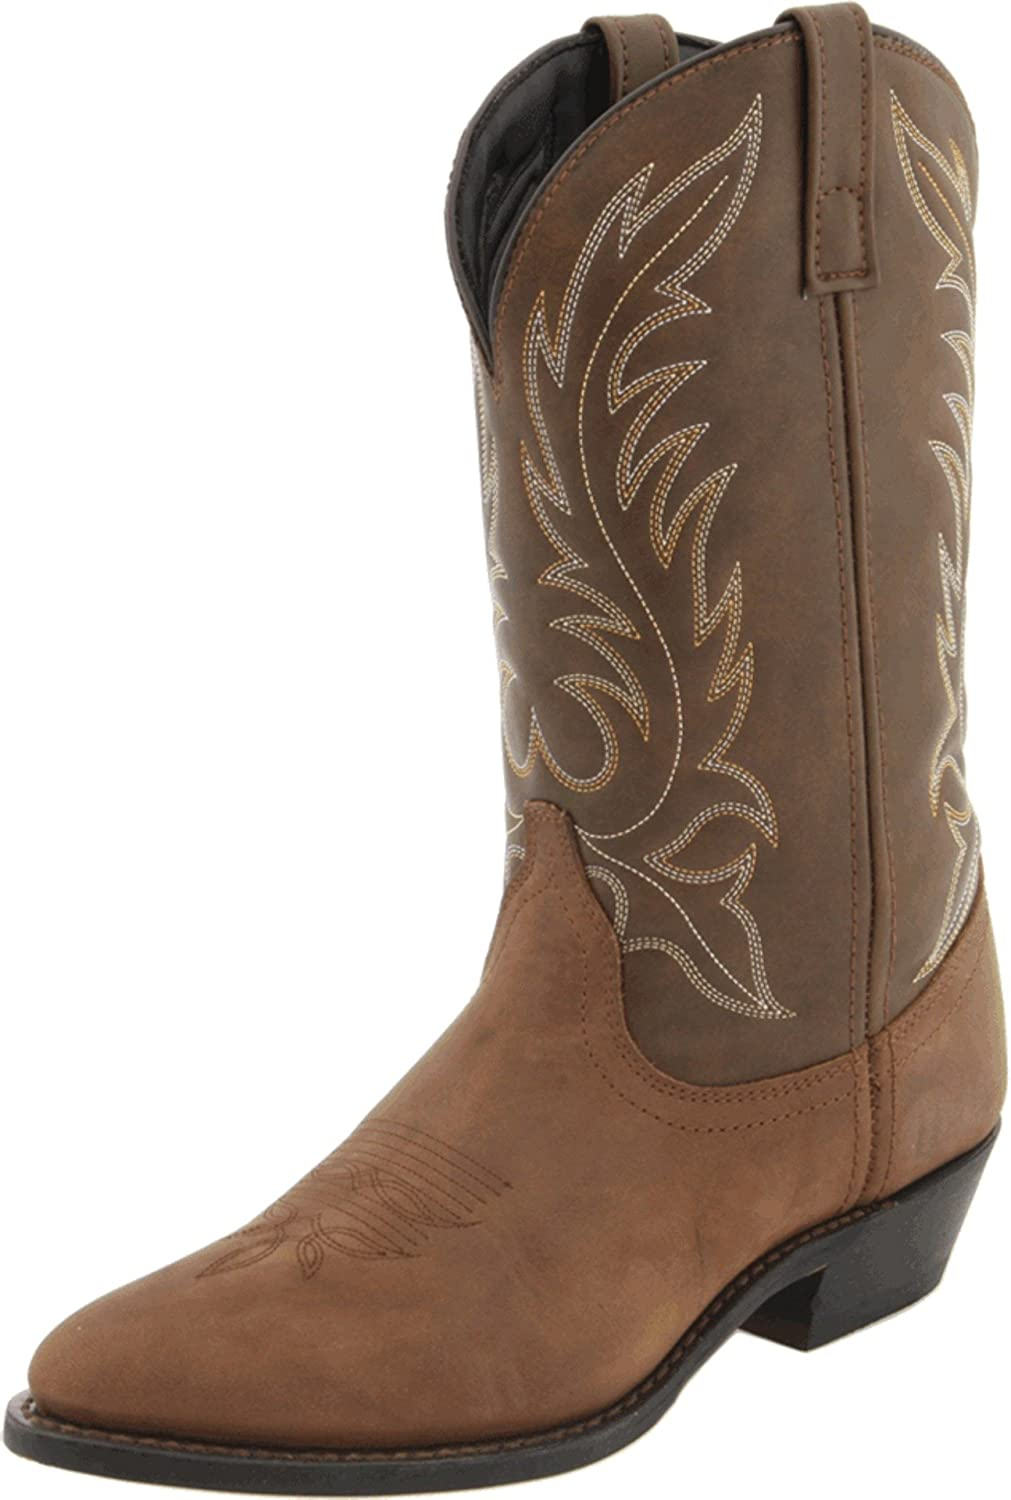 Laredo Kadi Boot B001DWK00O 10 B(M) US|Tan Distressed